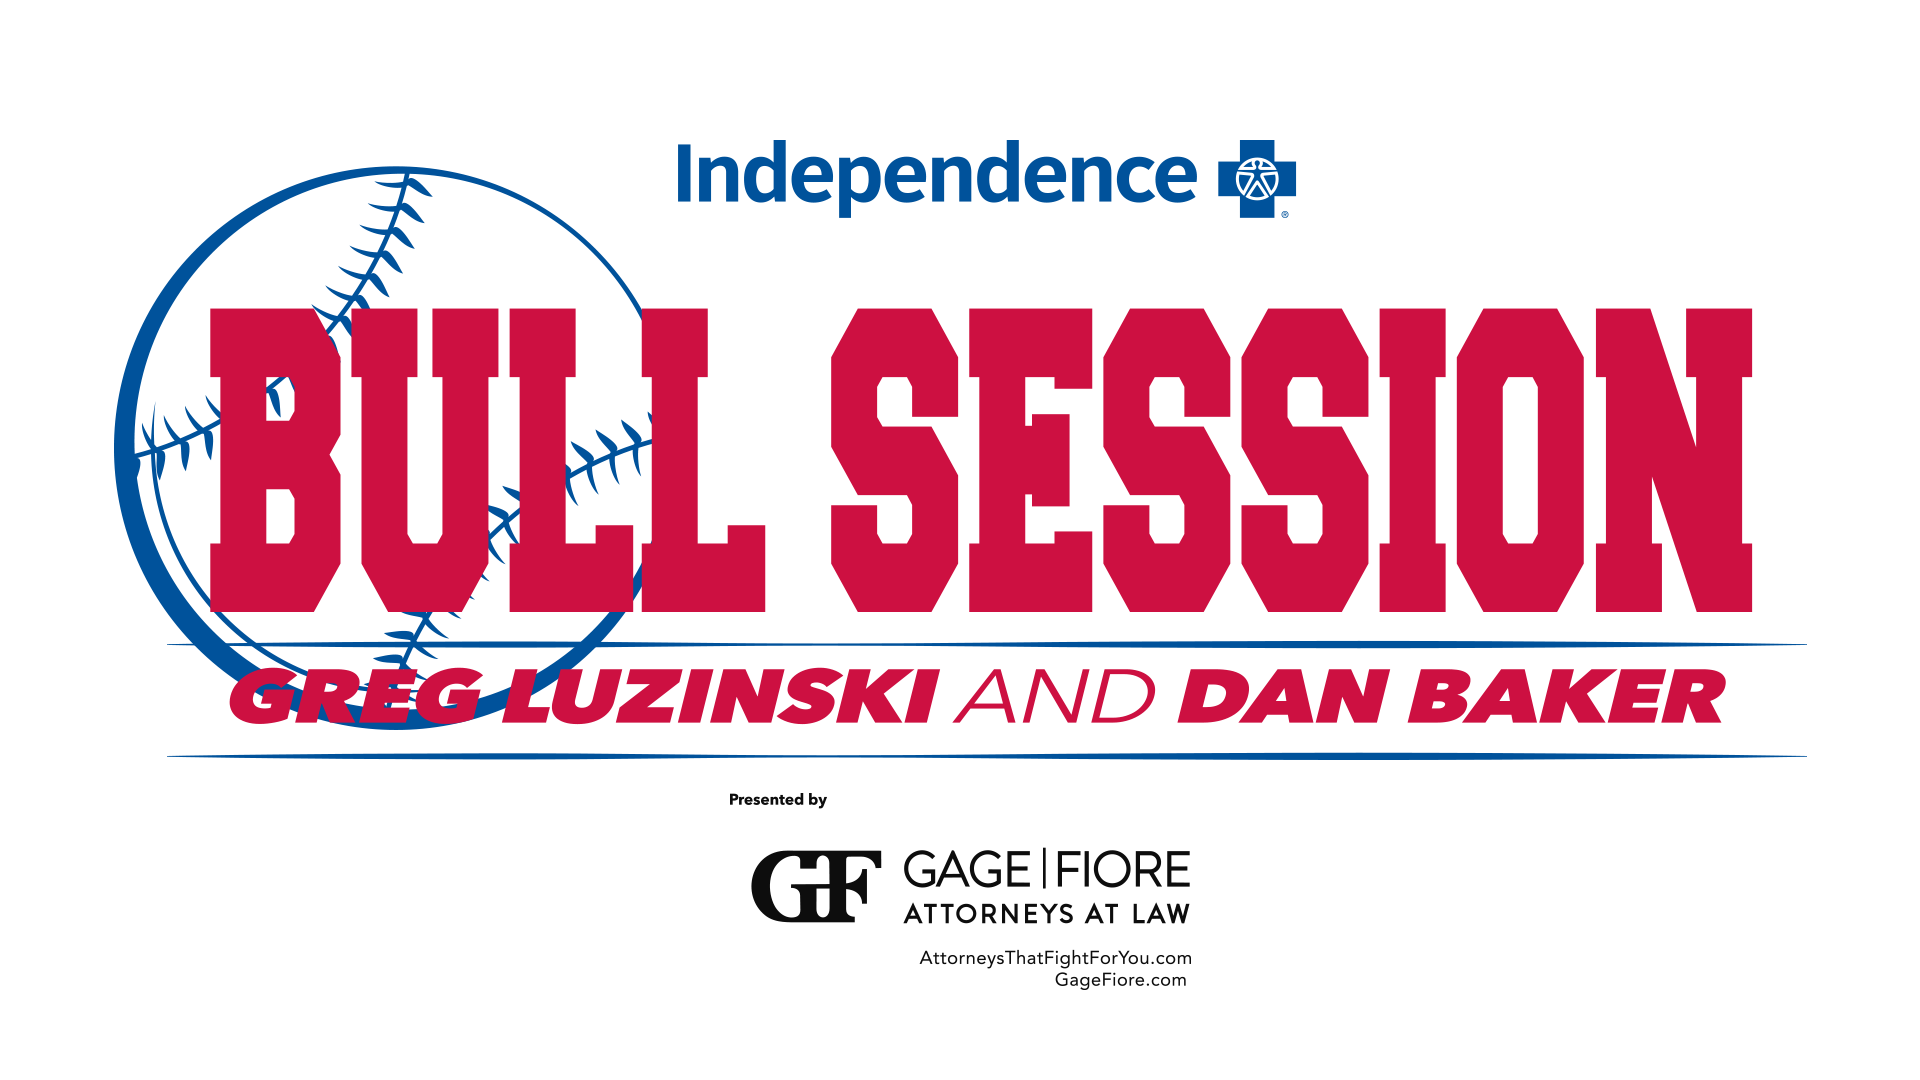 Bull Session Logo with Greg Luzinski and Dan Baker